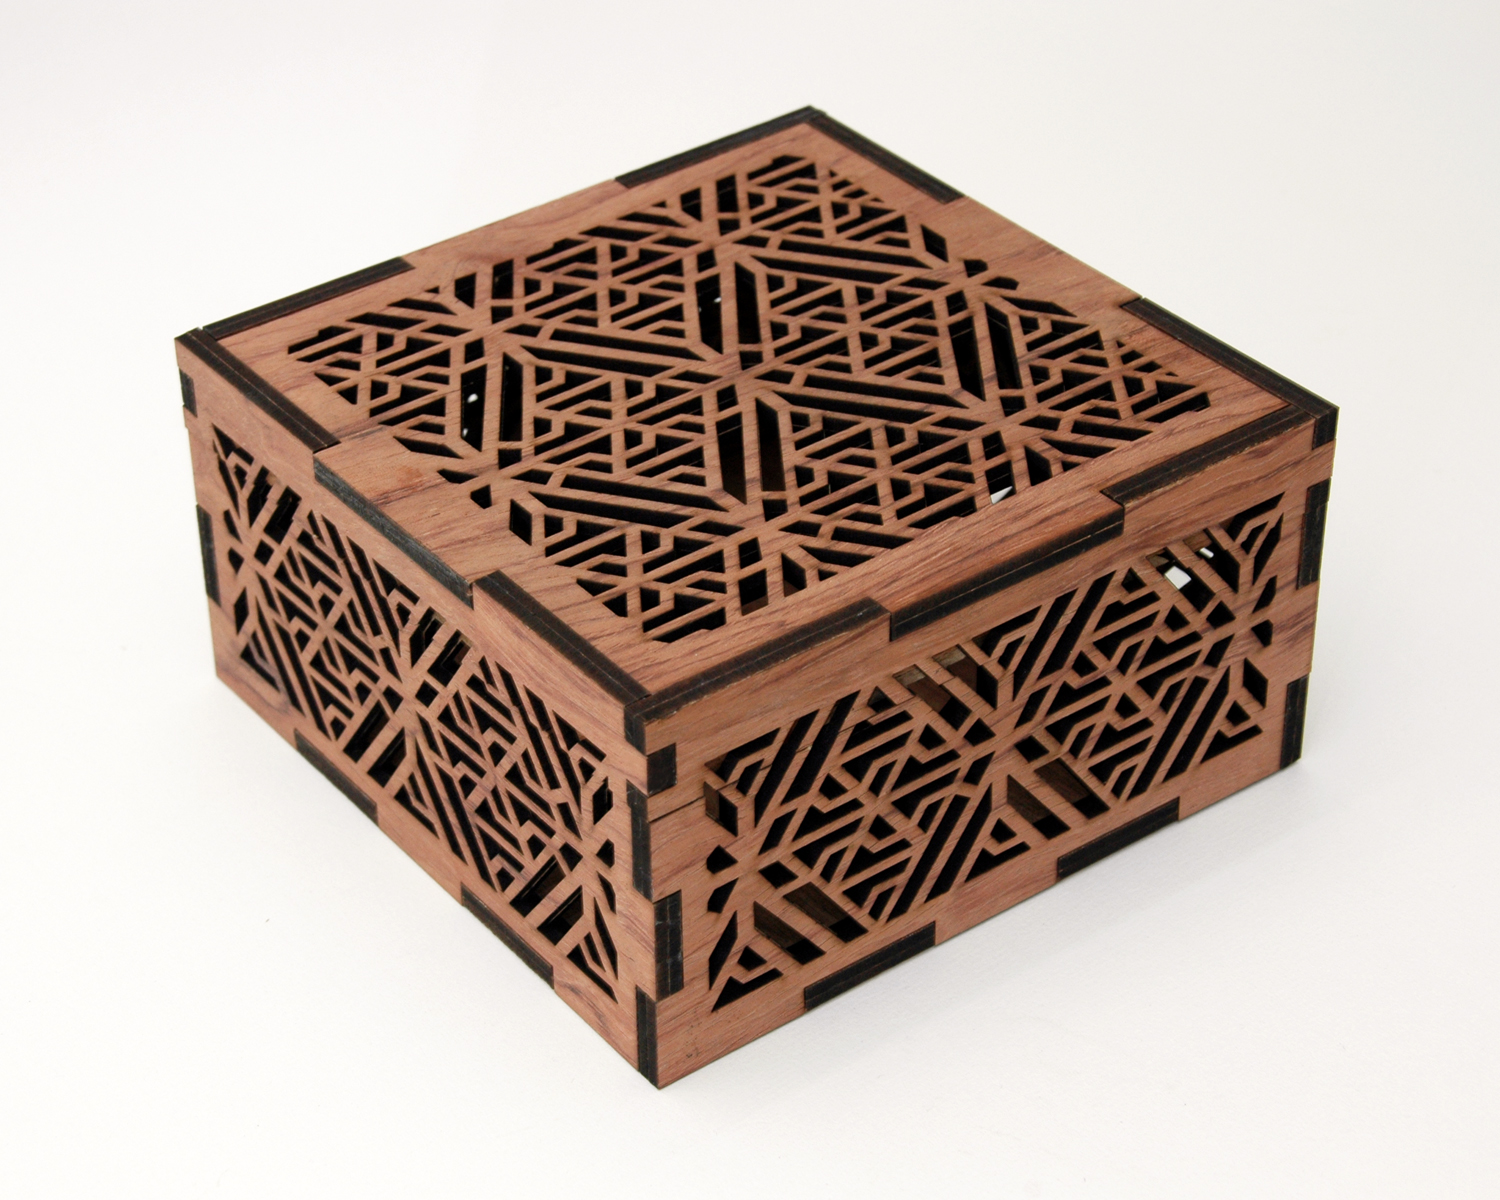 Small Decor Boxes  From $65 USD